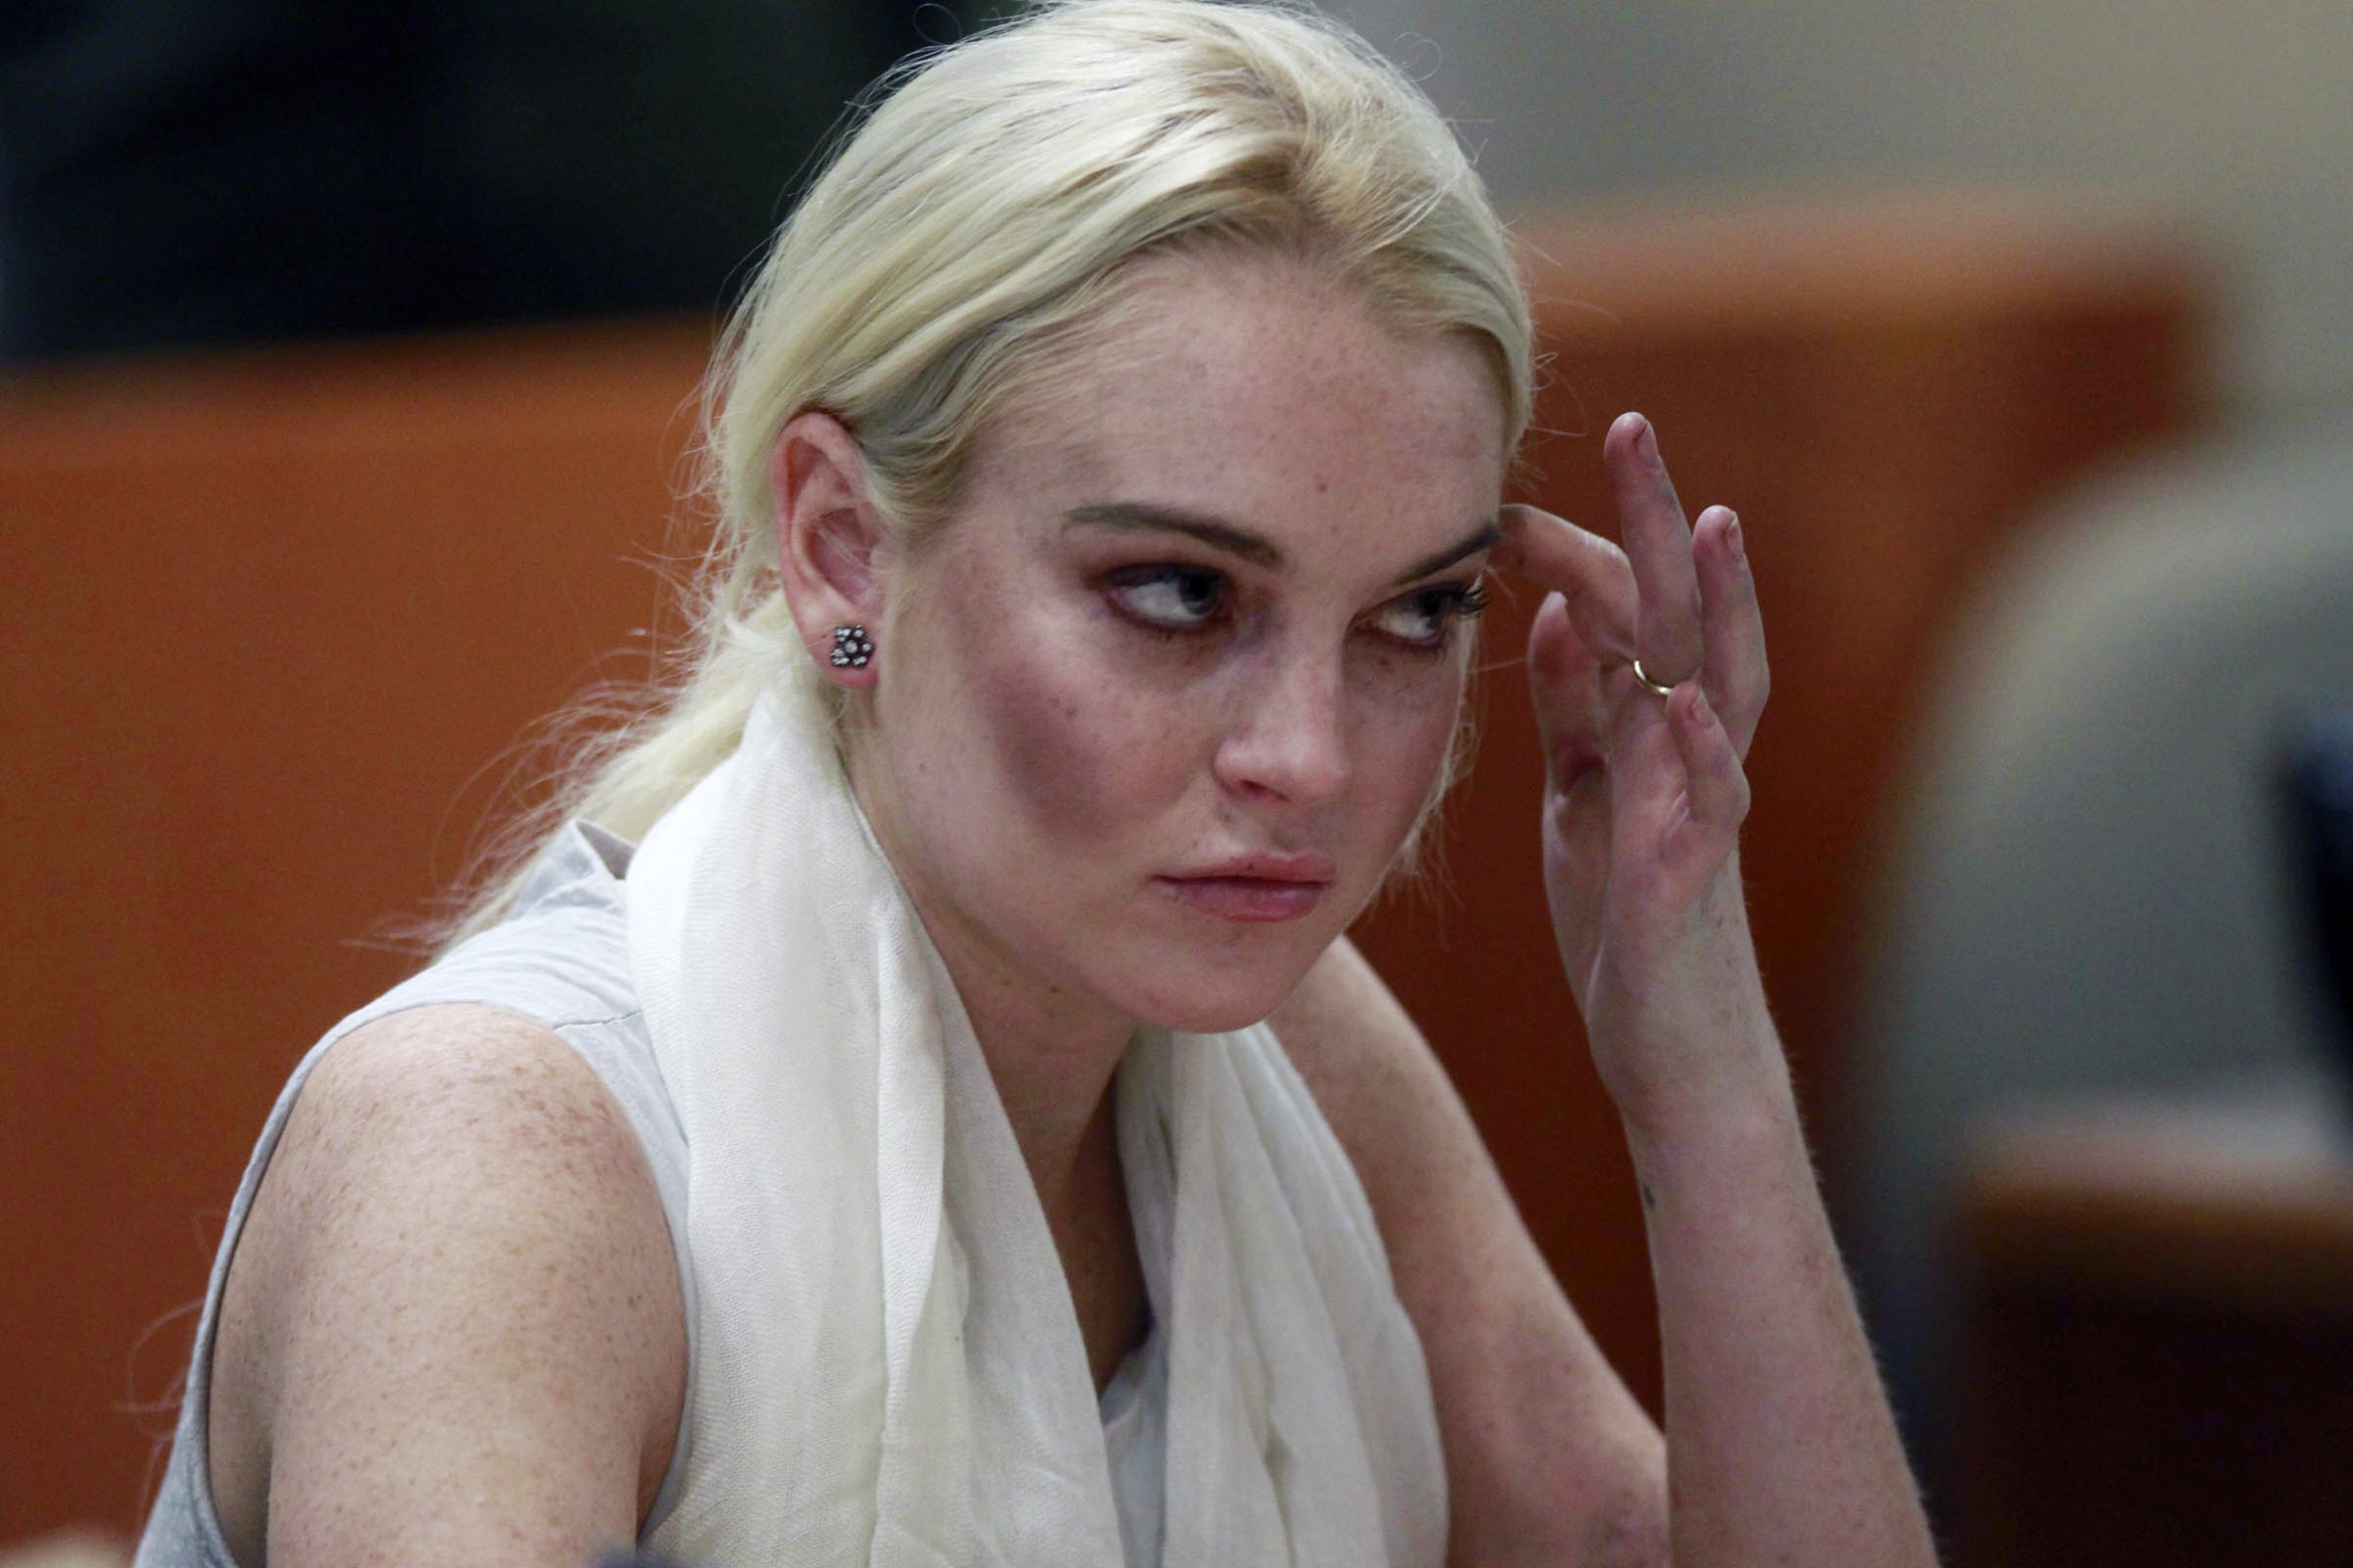 Actress Lindsay Lohan listens as a judge revokes her probation for failing to appear at a series of community service appointments at the Los Angeles Superior Court Airport Branch Courthouse during a progress report hearing in Los Angeles on October 19, 2011., Image: 105054848, License: Rights-managed, Restrictions: , Model Release: no, Credit line: MARK BOSTER / UPI / Profimedia